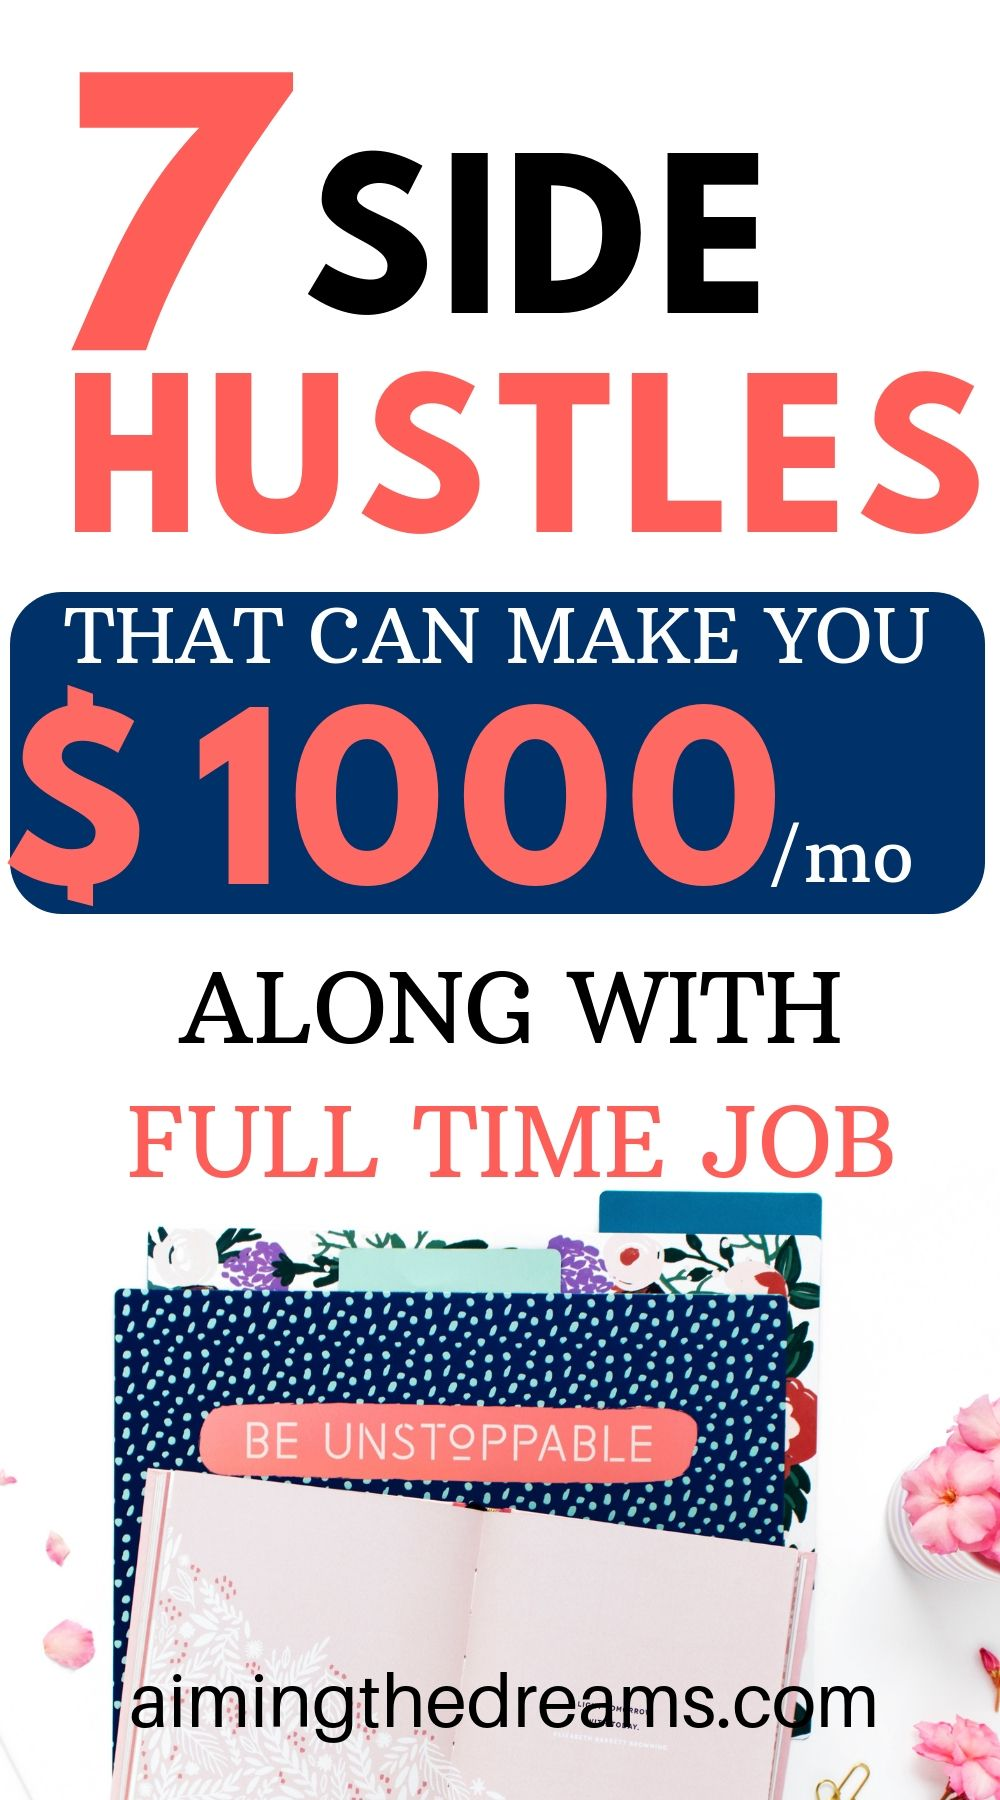 7 side hustles to make you $1000 every month